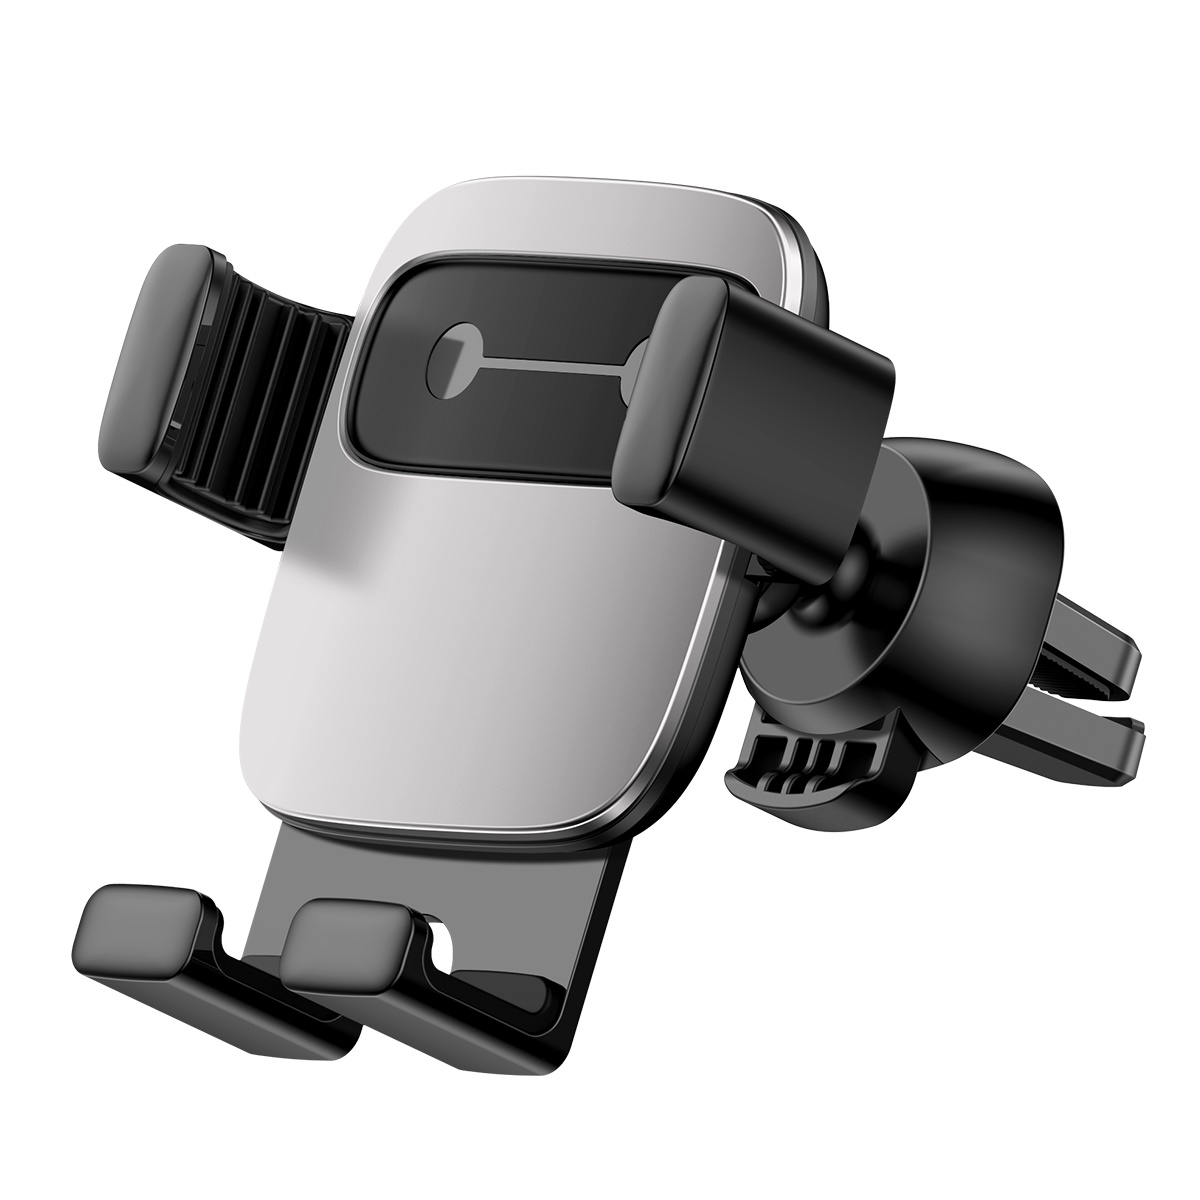 Baseus Cube Gravity Car Mount SUYL-FK0S | One-Hand Operation | Multi-Angle | Charging Hole | Give the Phone a Personal Look